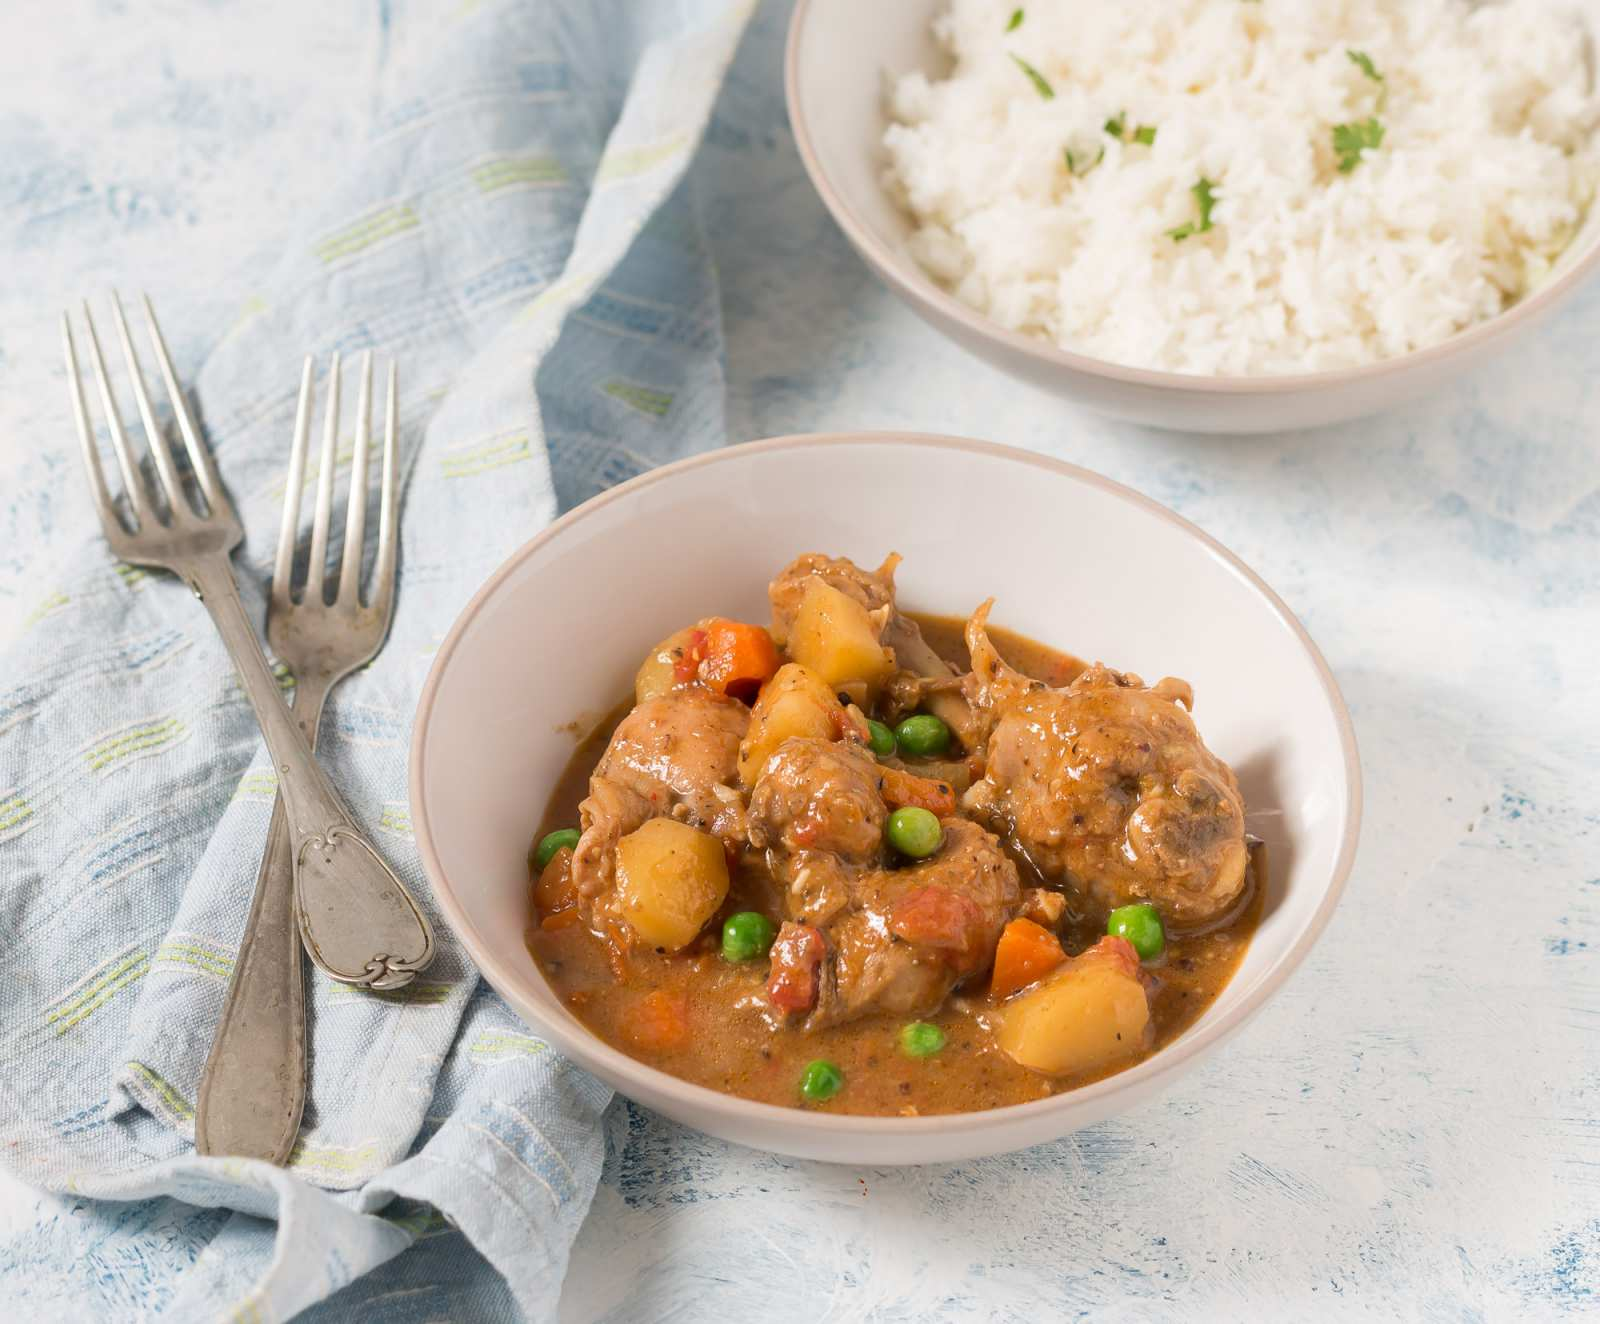 Spicy & Tangy Goan Chicken Stew Recipe With Vegetables